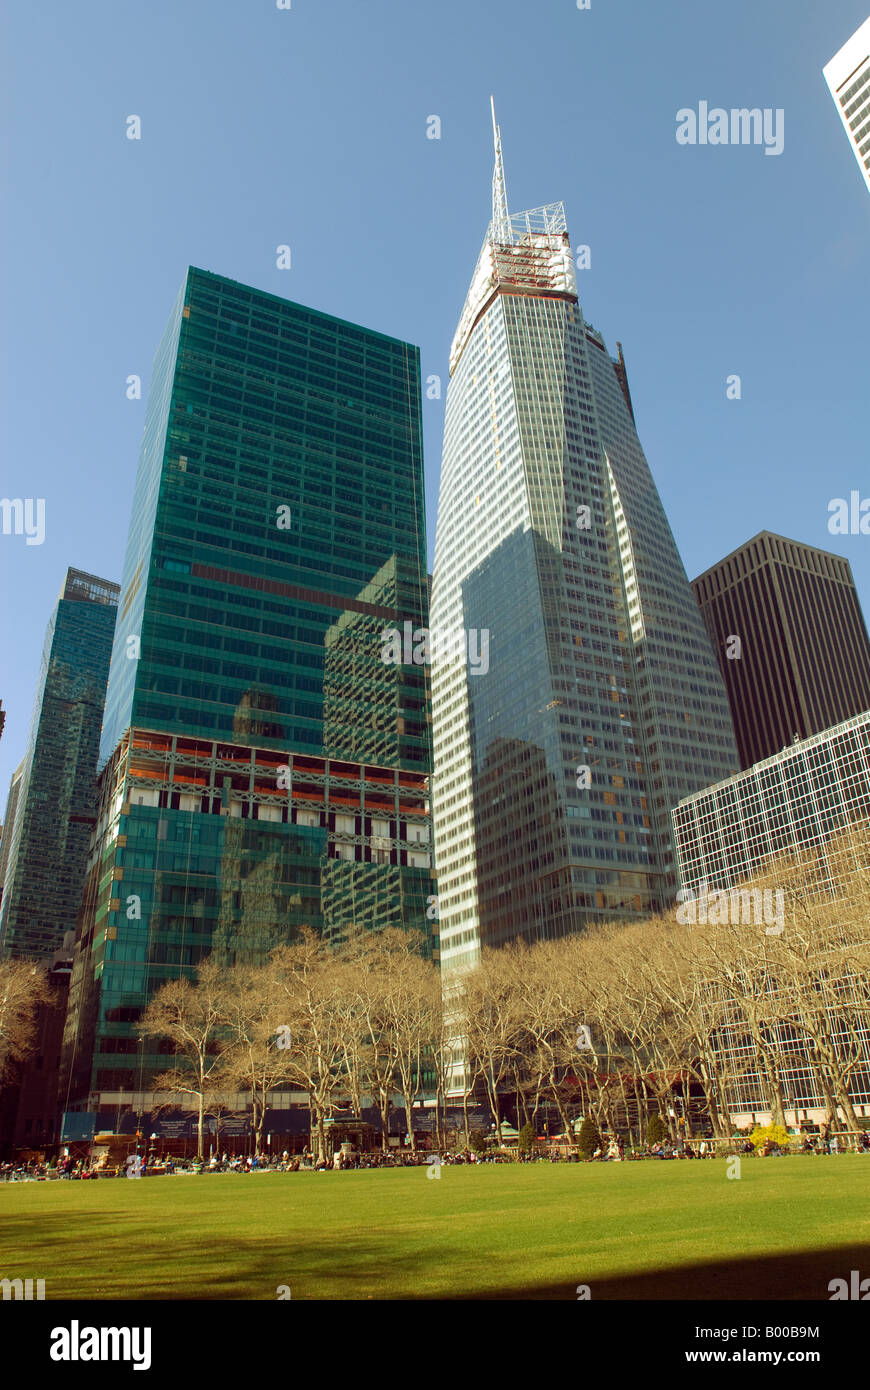 The former Verizon building under renovation and the under construction Bank of America Tower - Stock Image